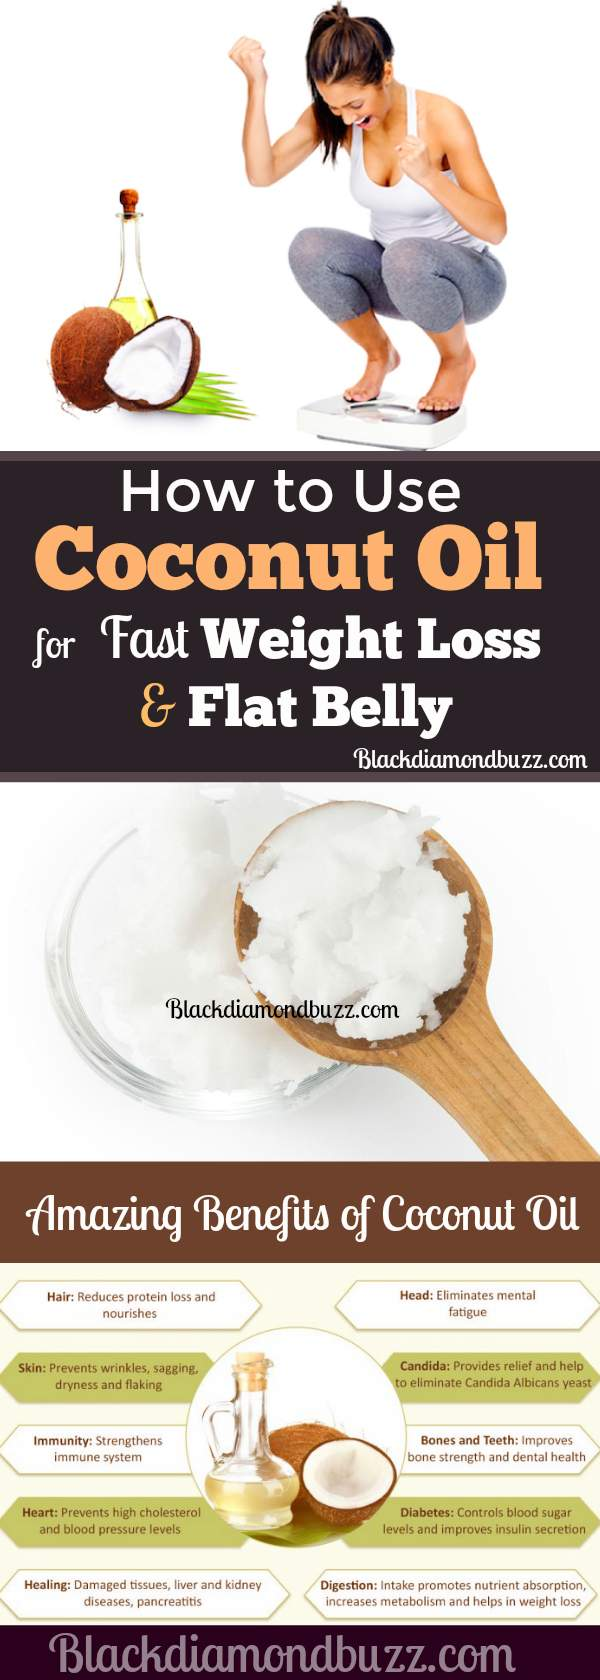 How to use Coconut Oil for Weight Loss and Flat Belly